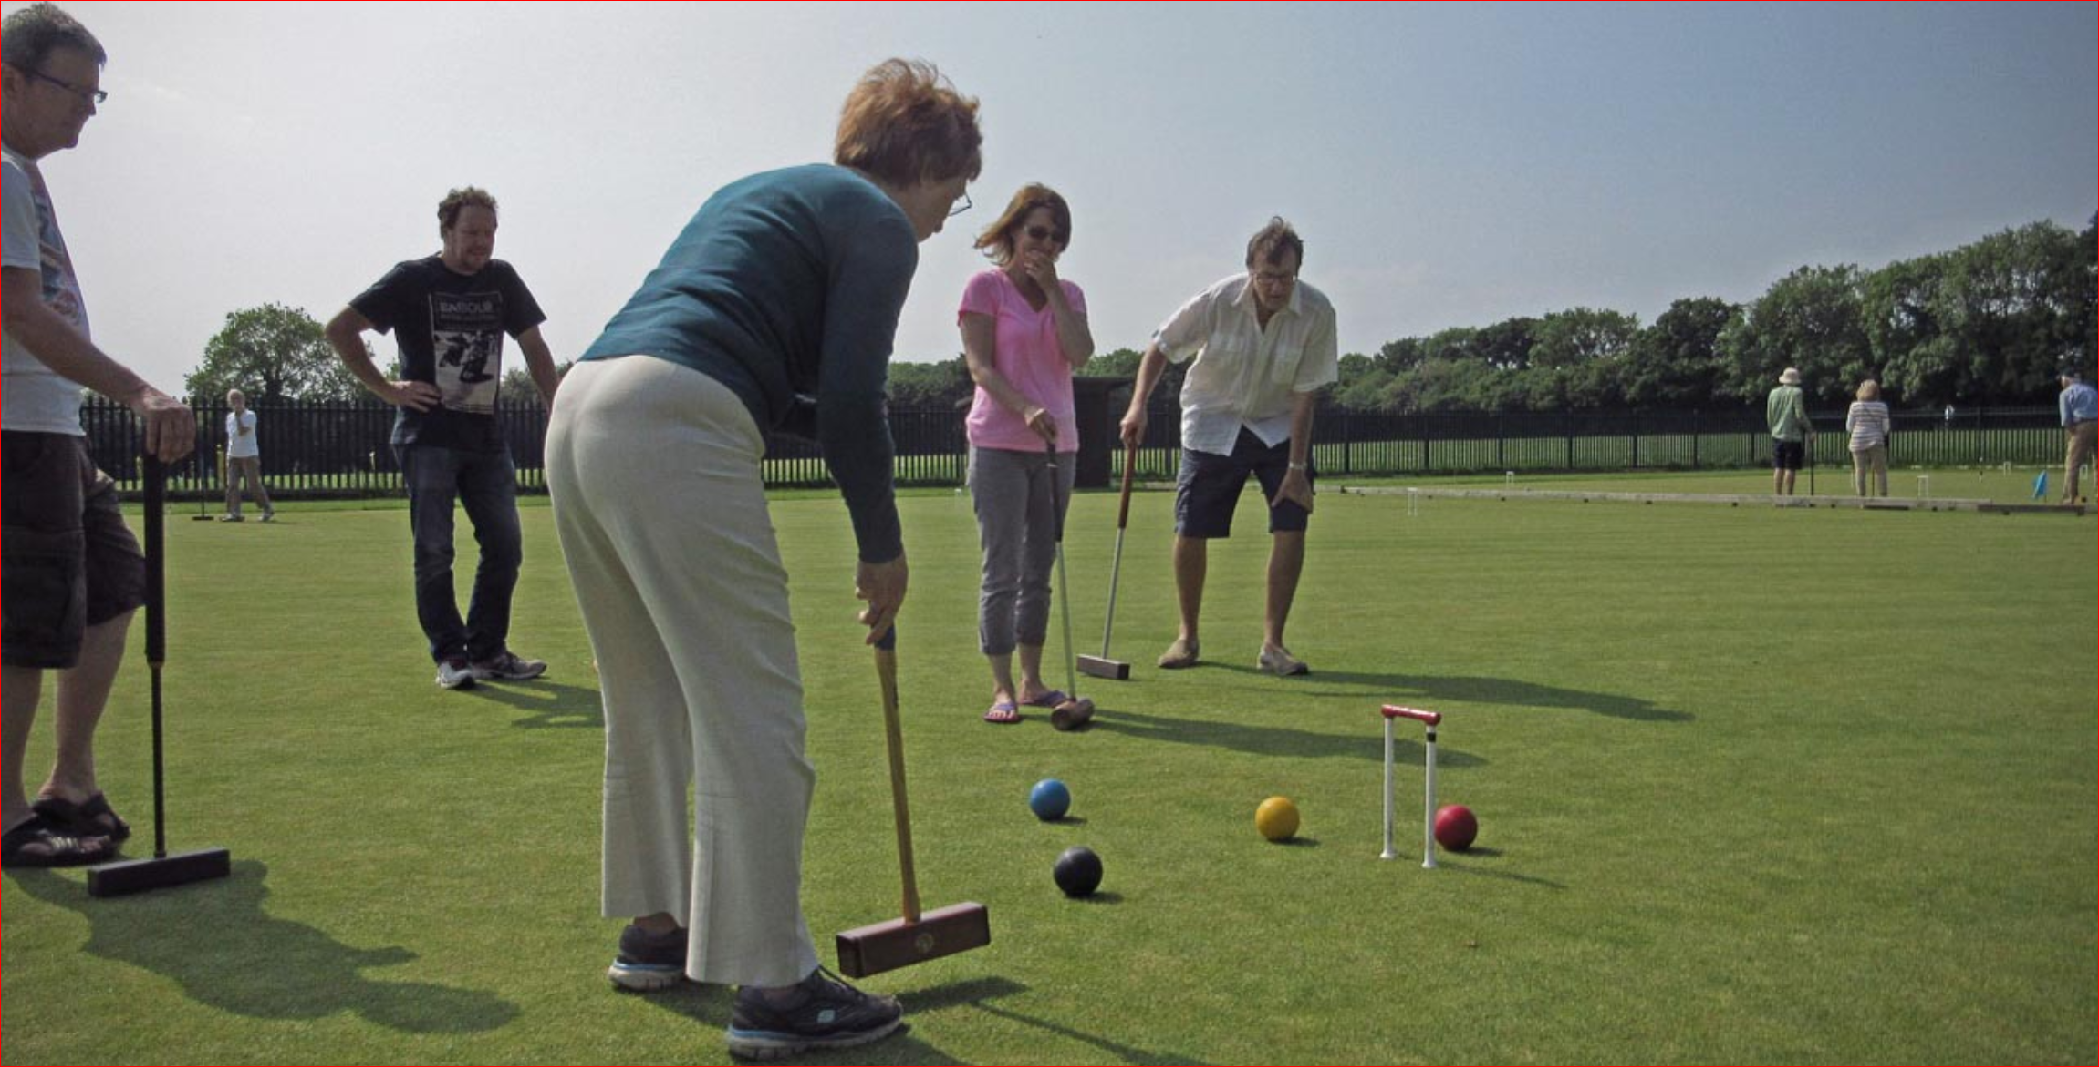 Croquet Come and Try Day at High Wycombe Croquet Club